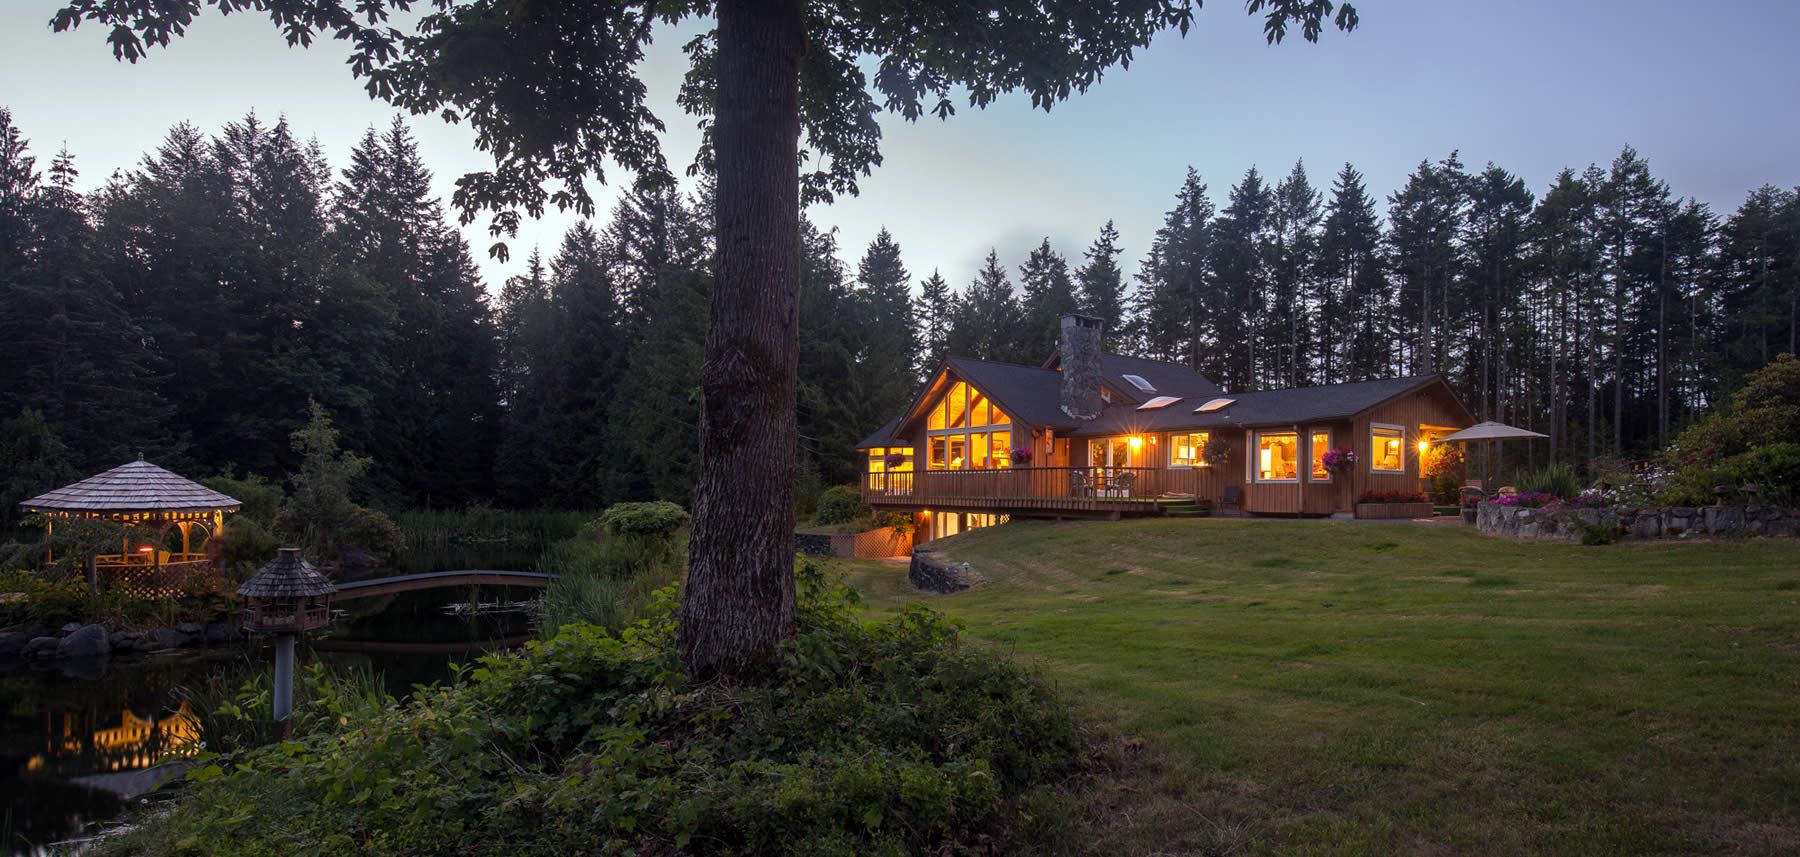 a hidden haven forest cottages near olympic national park washington